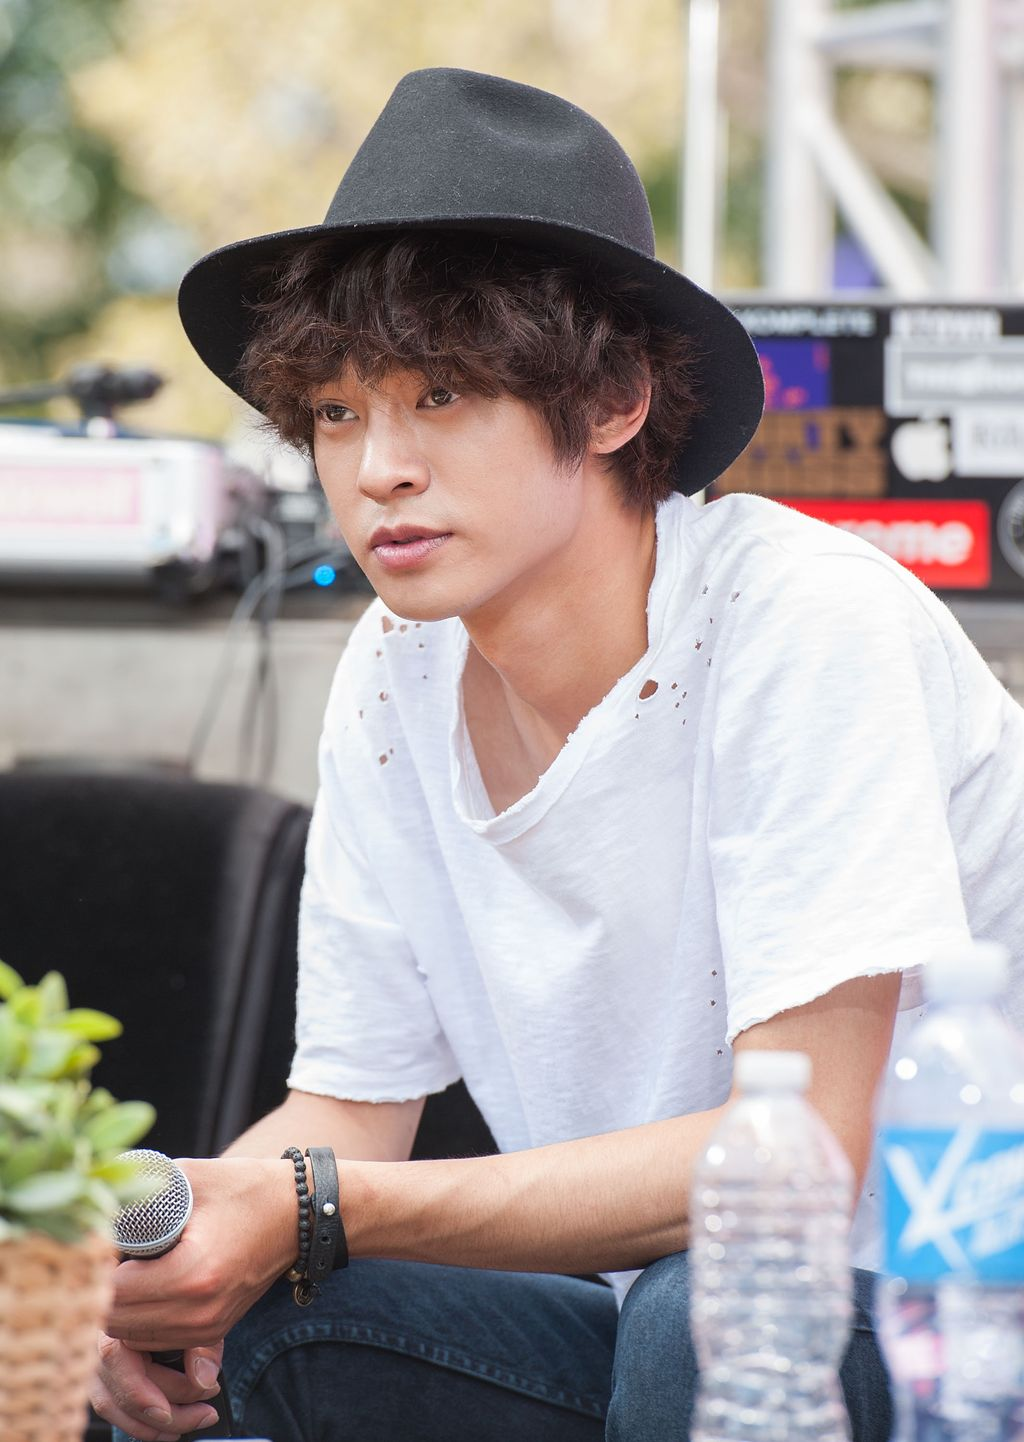 LOS ANGELES, CA - AUGUST 10:  Singer Jung Joon Young attends the Mnet America show Danny From LA (DFLA)  KCON 2014 - Day 2 at the Los Angeles Memorial Sports Arena on August 10, 2014 in Los Angeles, California.  (Photo by Valerie Macon/Getty Images)